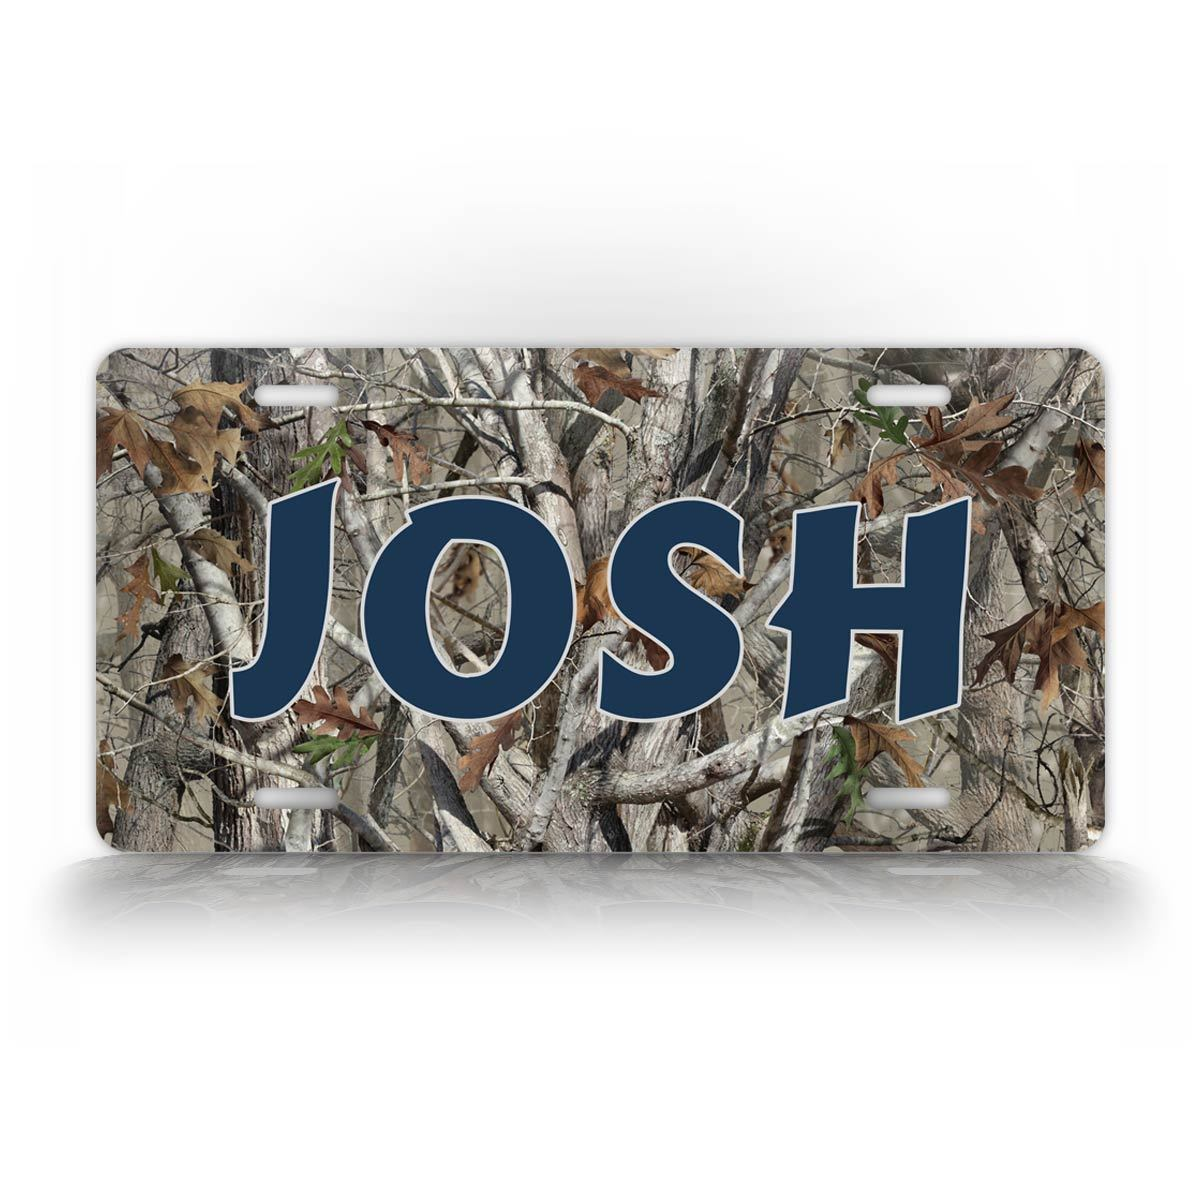 Blue Text Camo Hunting License Plate